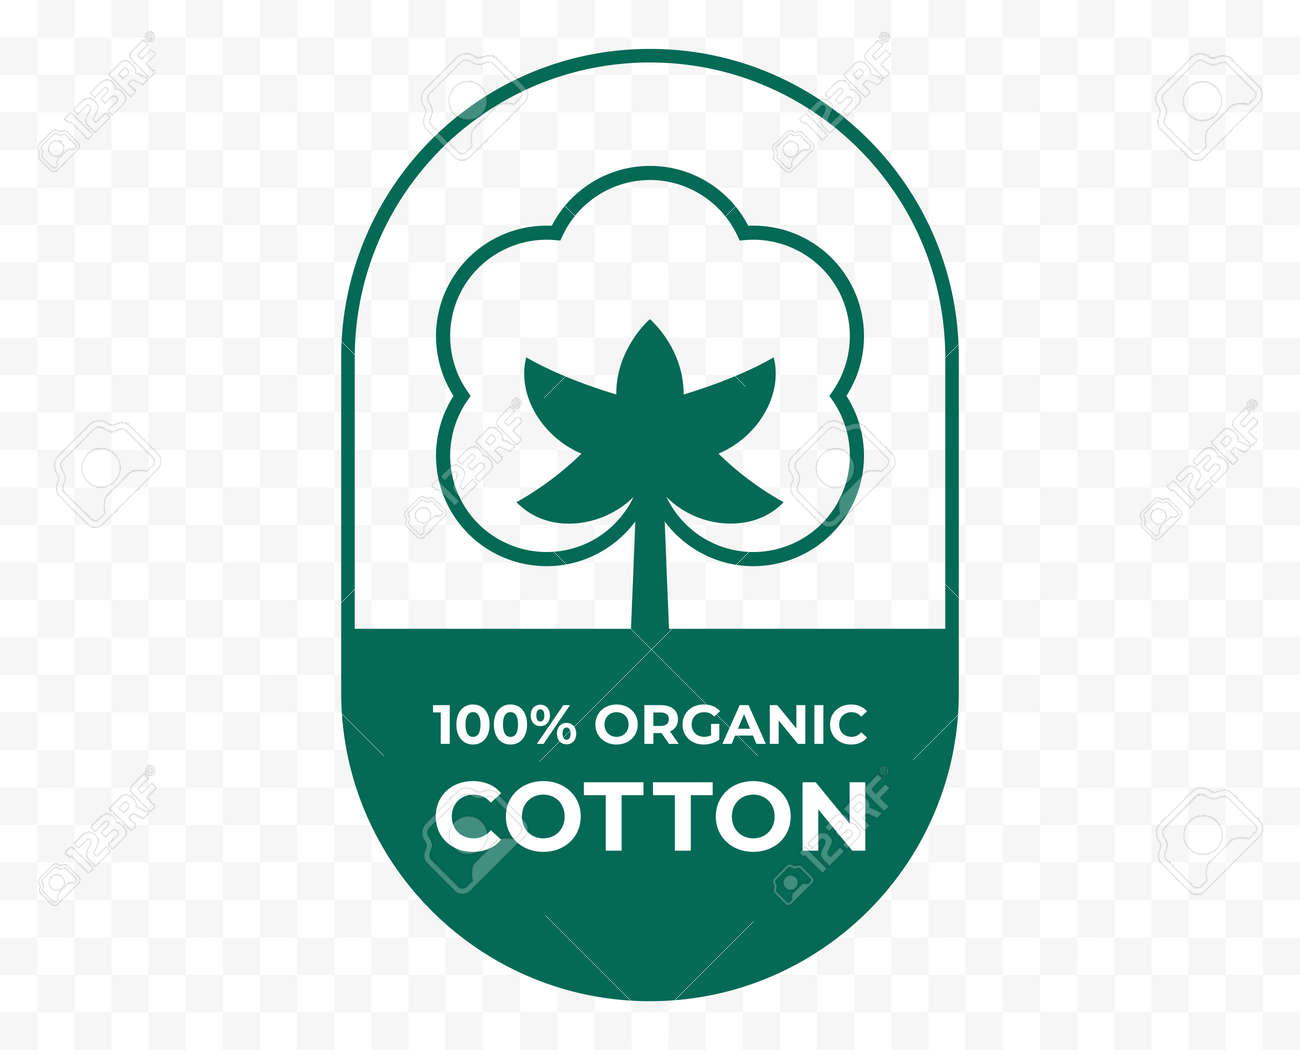 Cotton icon, fabric logo organic natural 100% cotton, vector quality certificate and clothes label - 163744135